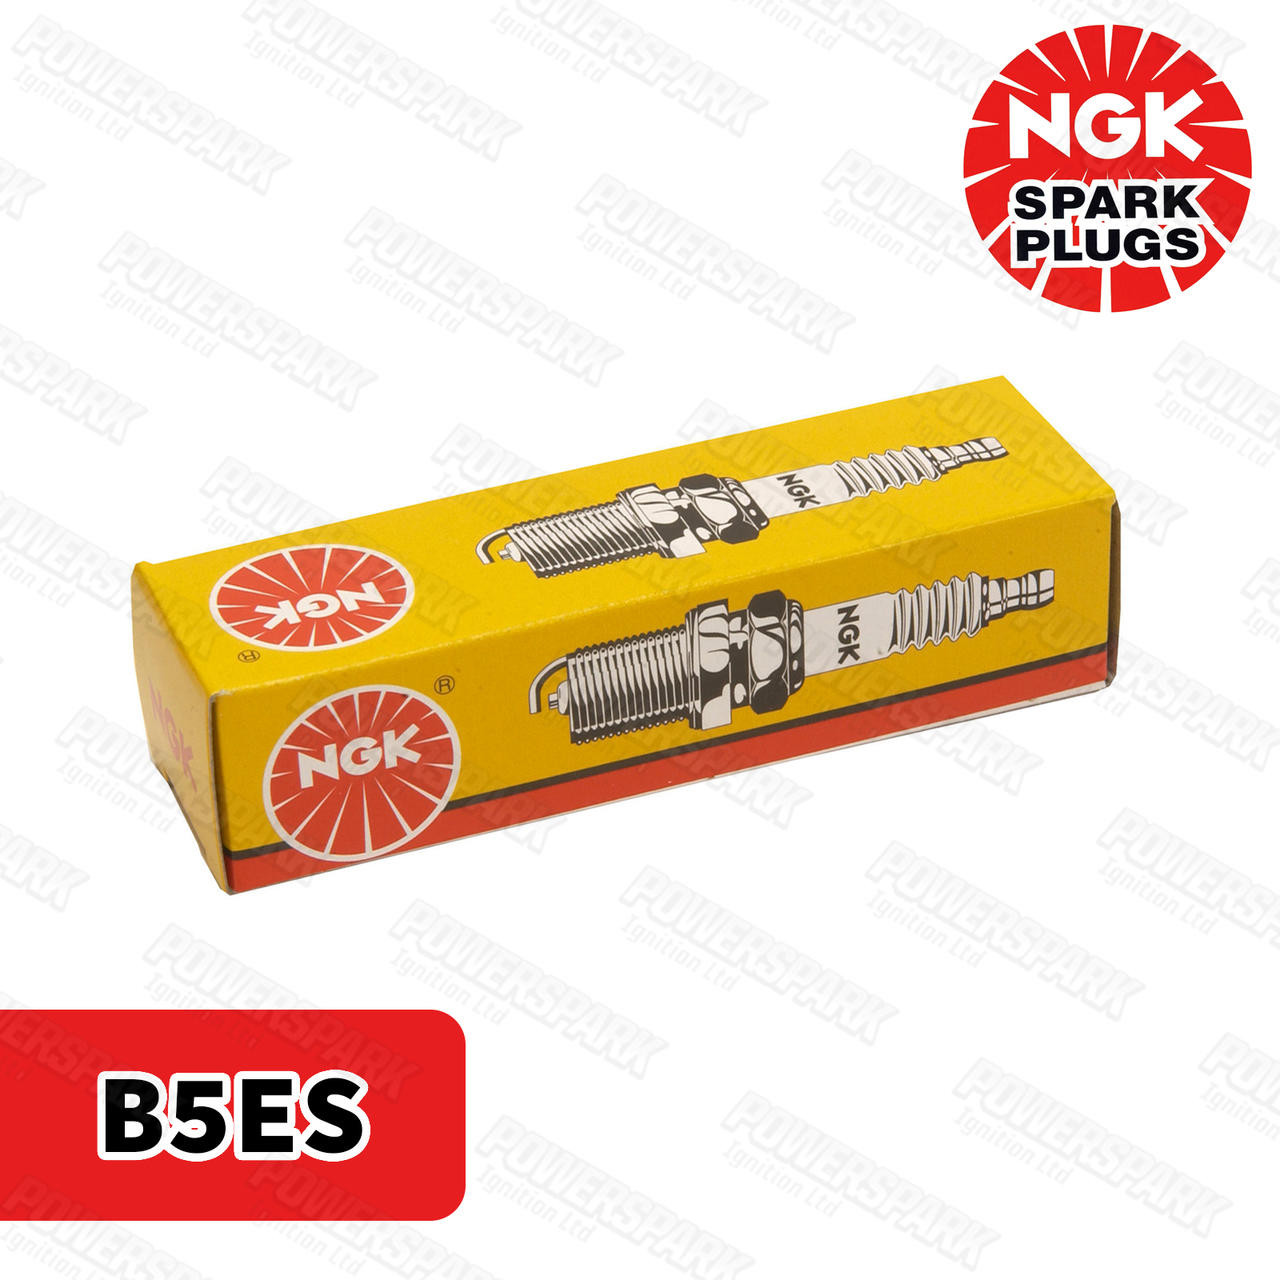 NGK Spark Plugs NGK B5ES Spark Plug for Classic and Modern Cars